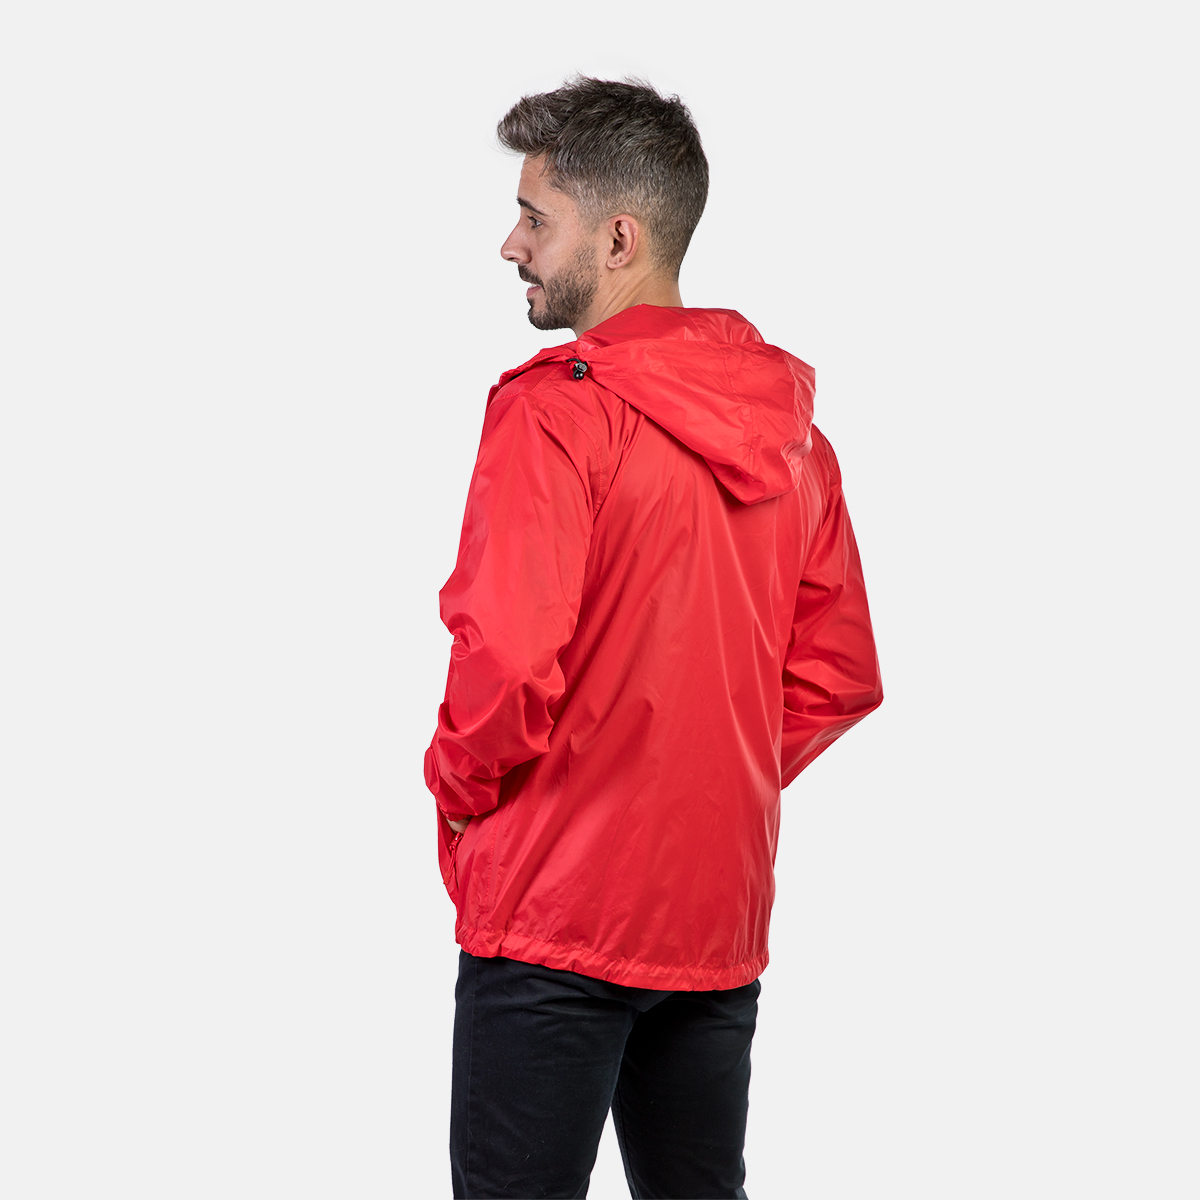 LINSOLES RED UNISEX'S